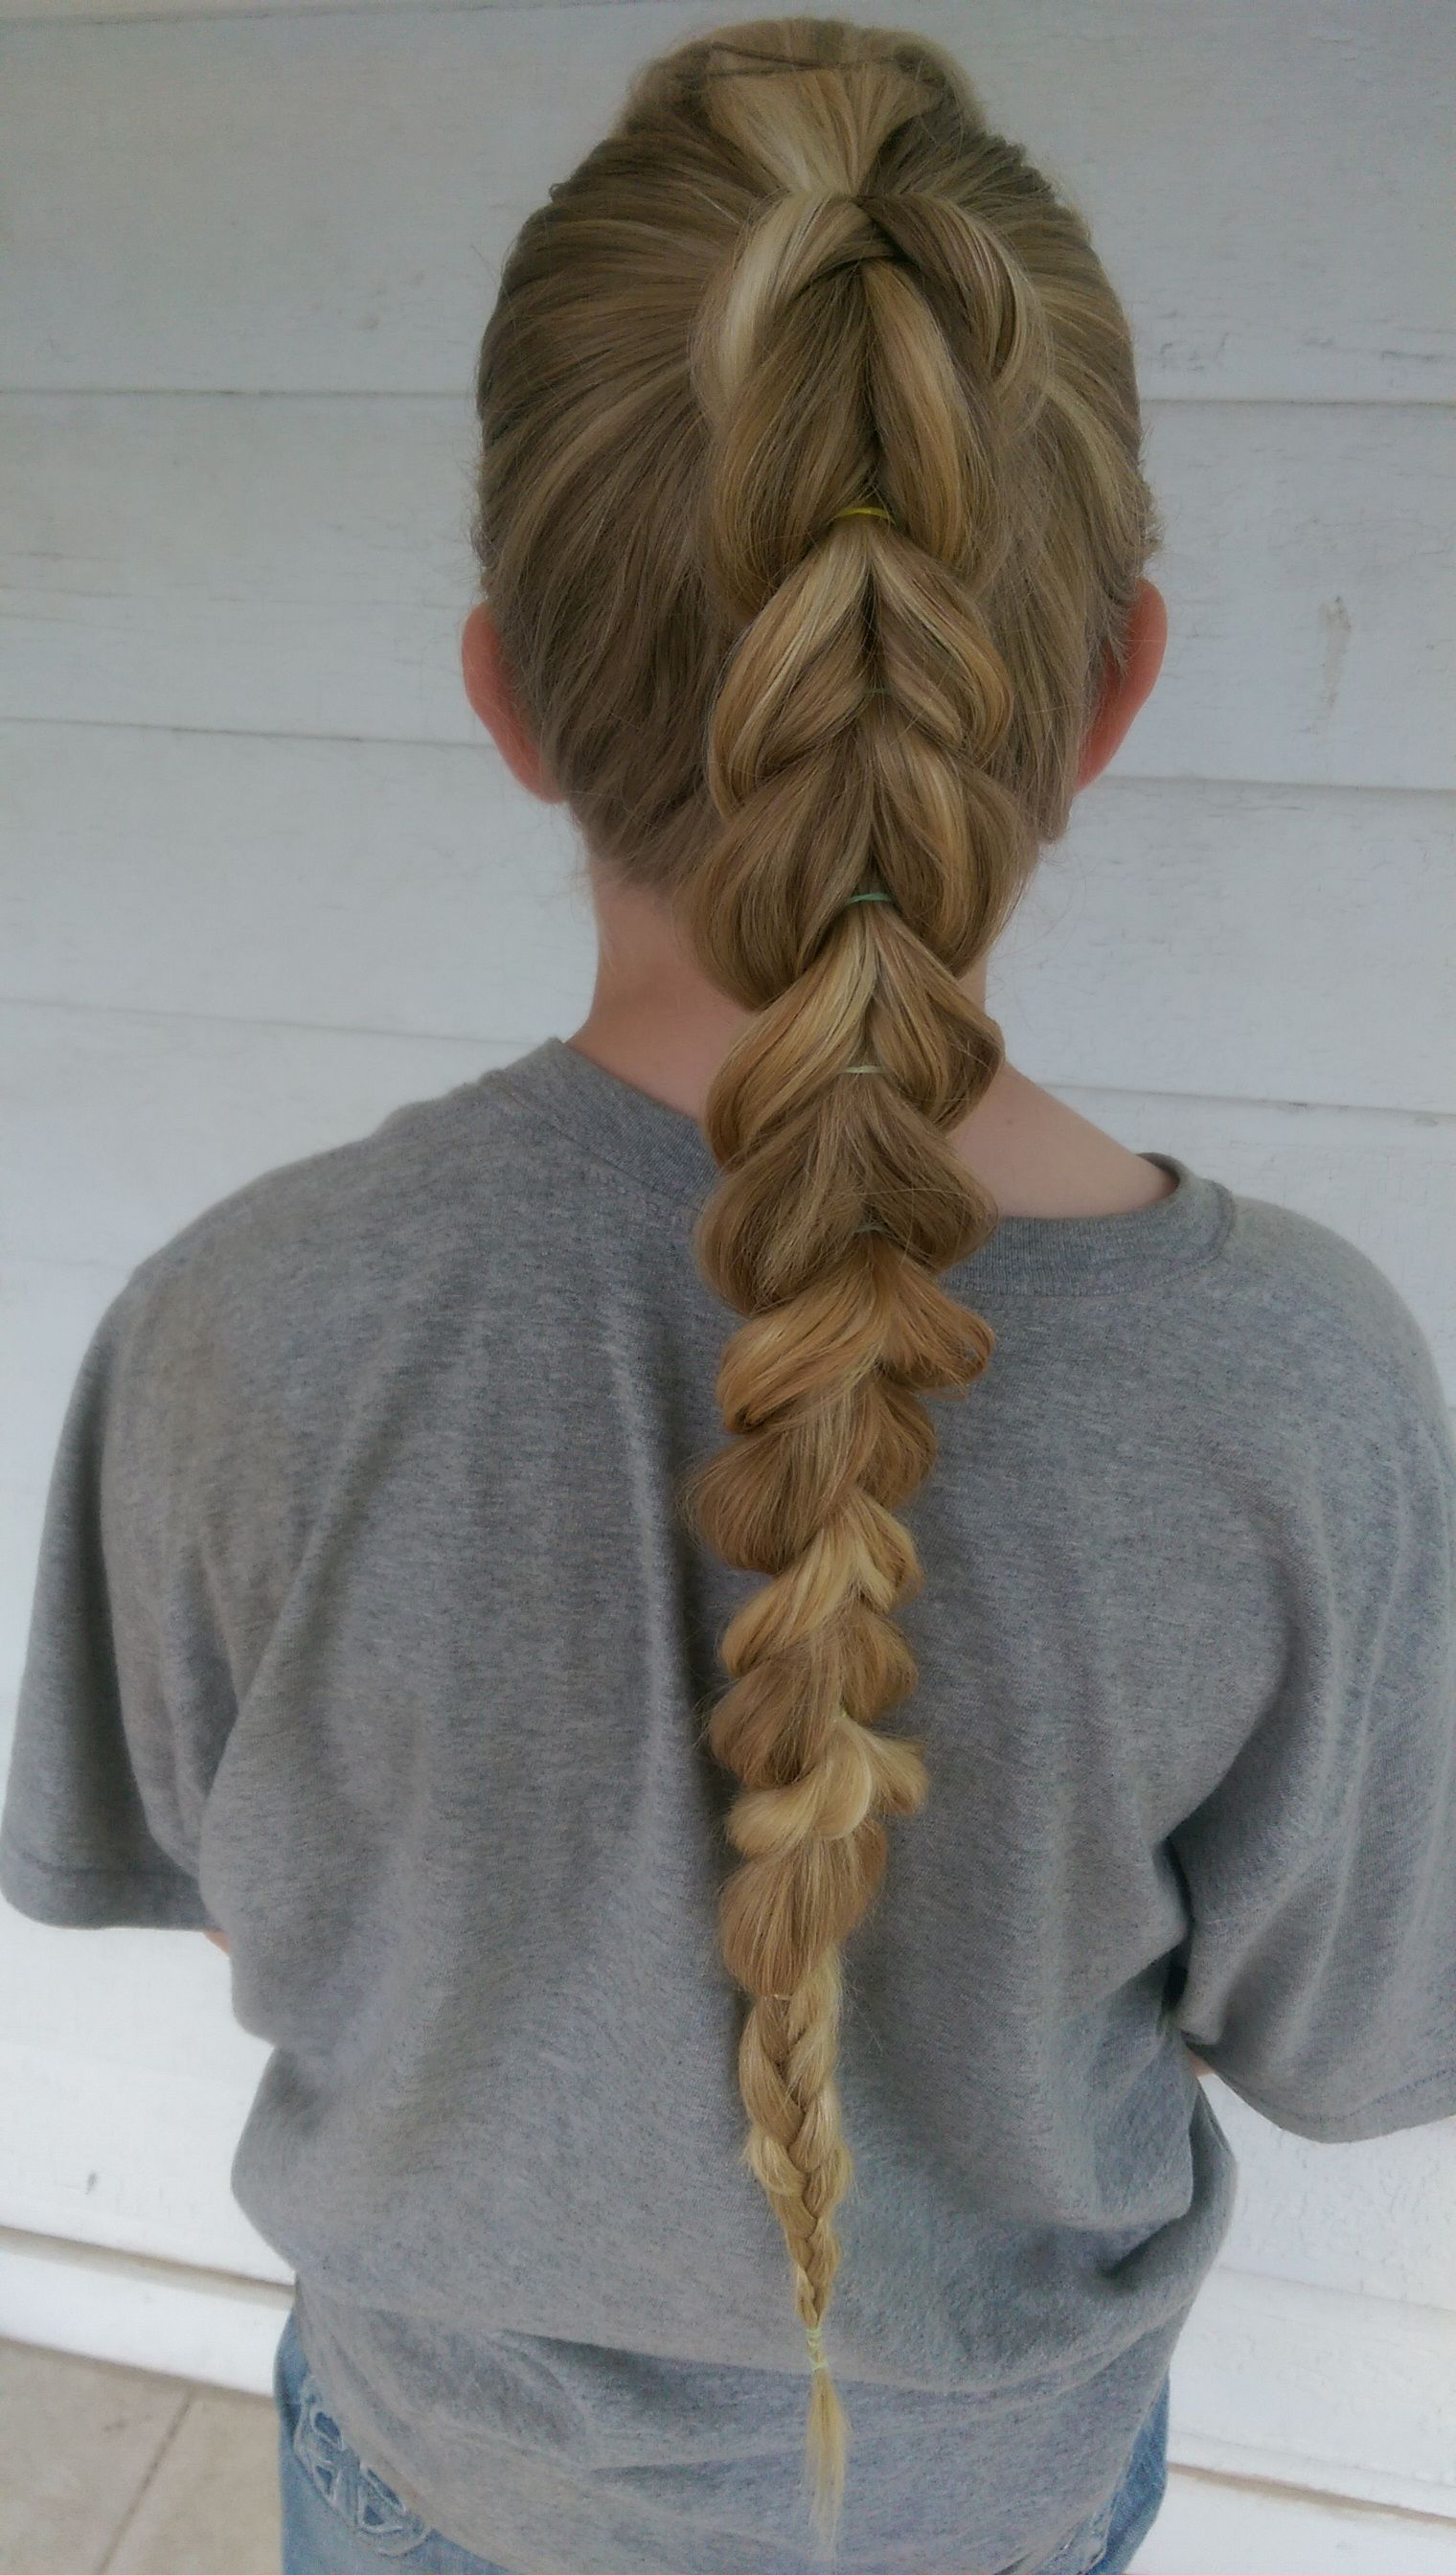 Pull Through Braid With Front Bump Accent Much To Do About An Updo